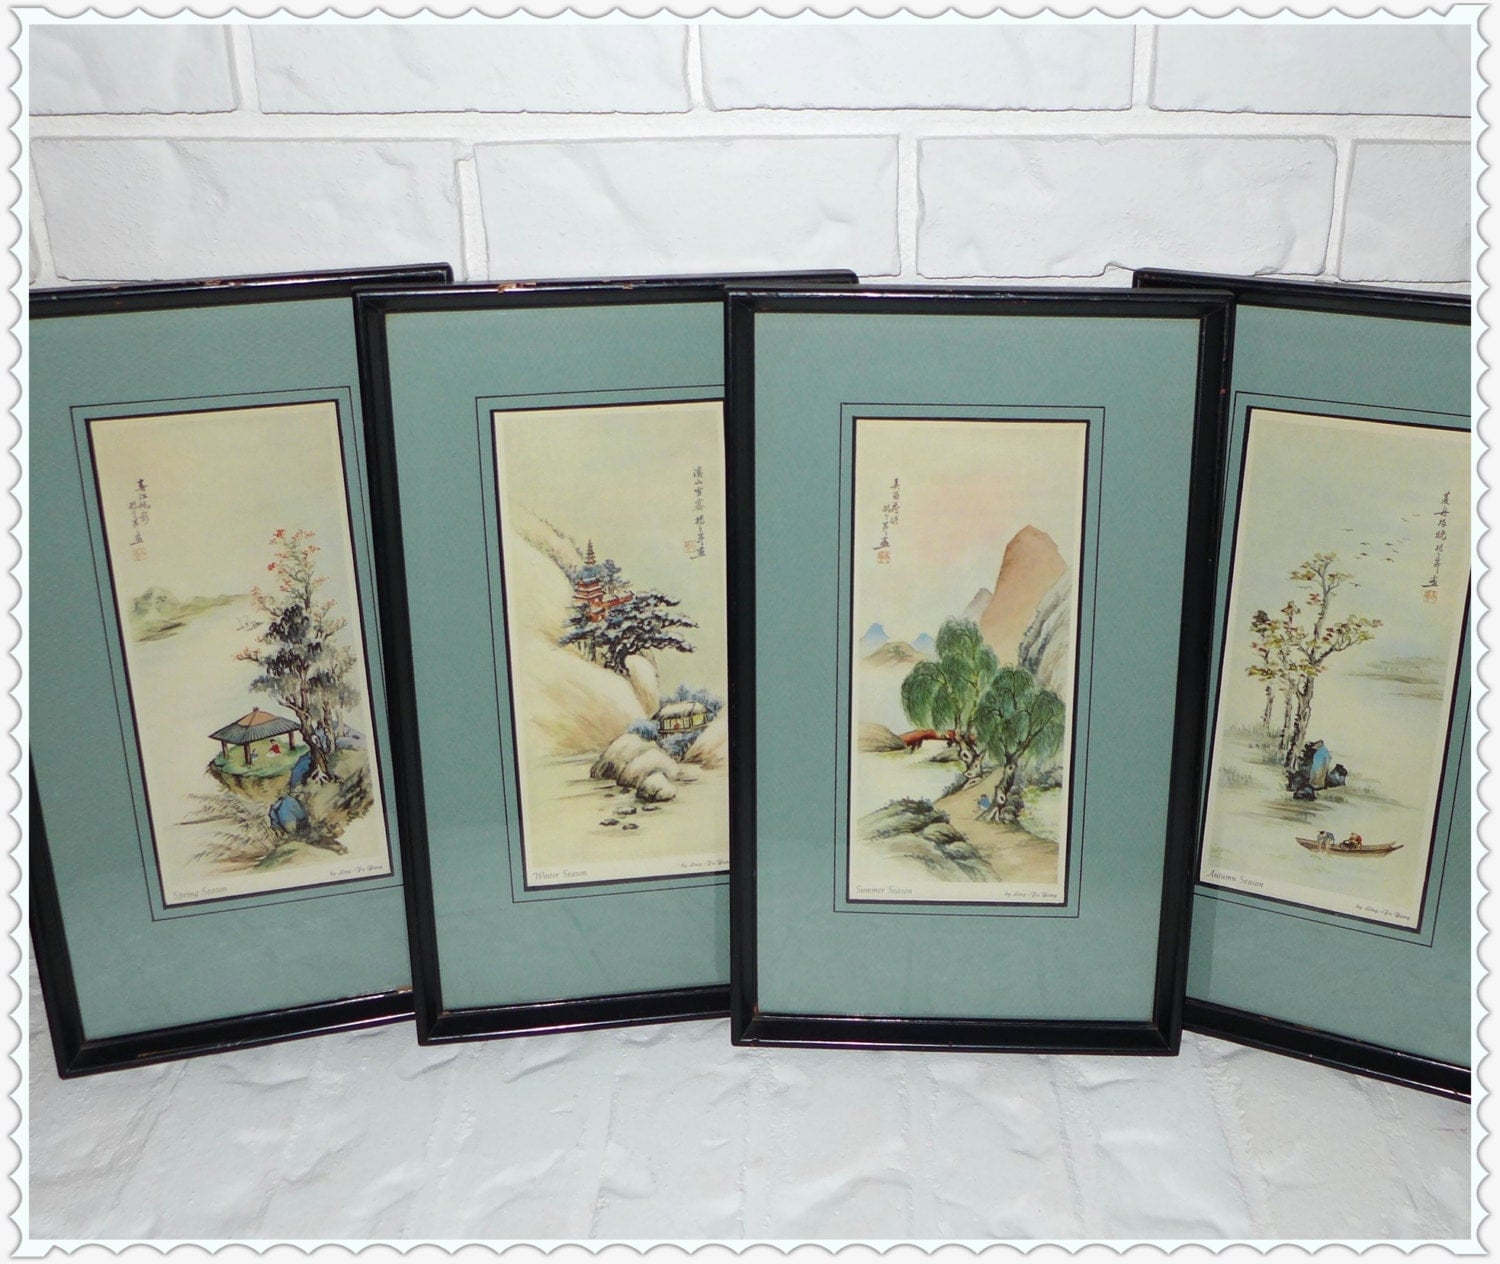 Framed Asian Prints Four Seasons Ling Fu Yang Vintage